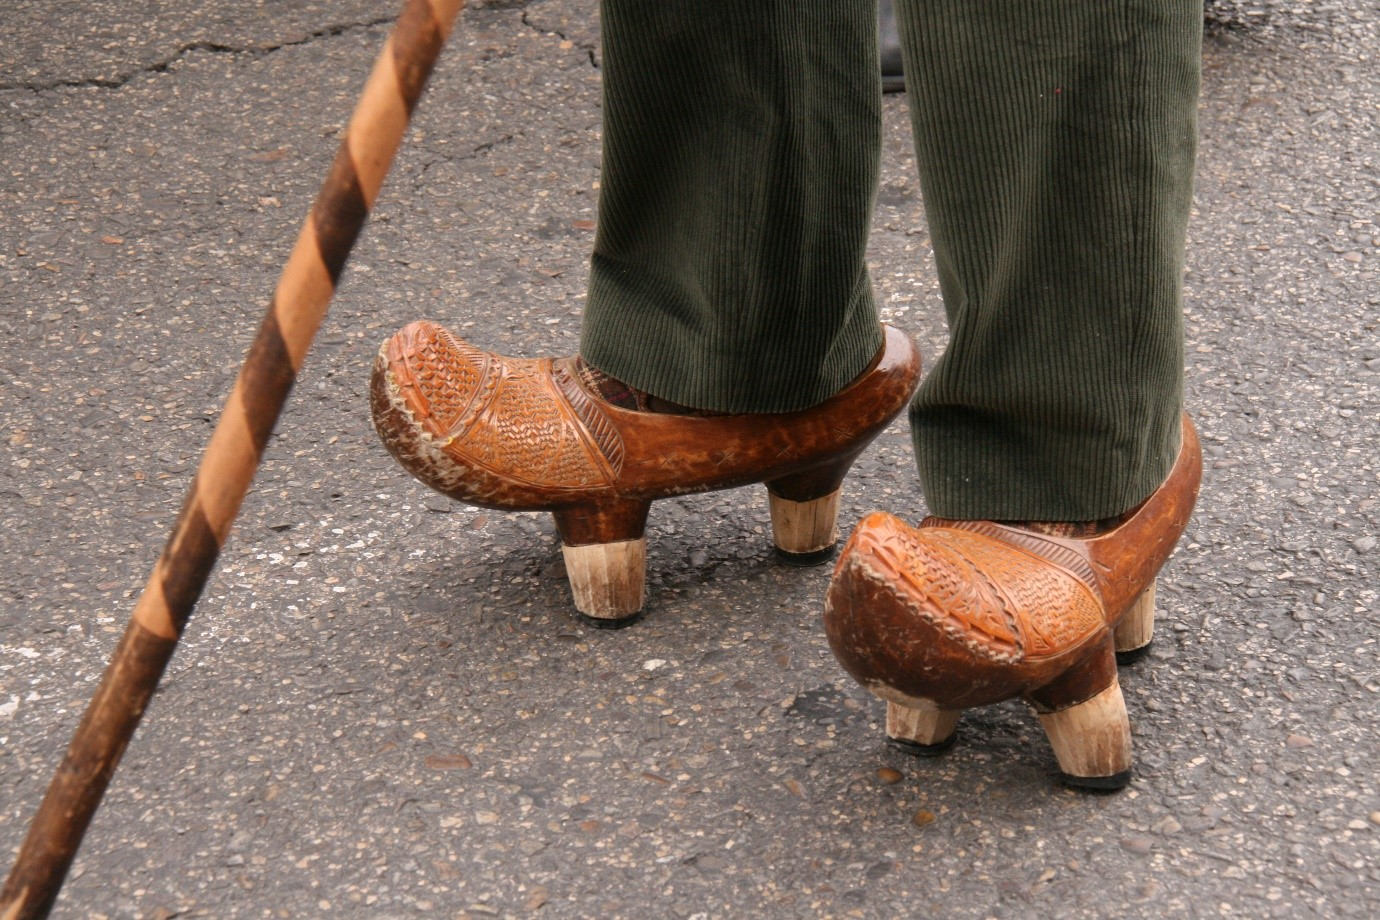 HIIT gets rid of clogs and improves heart health (image: a pair of clogs)